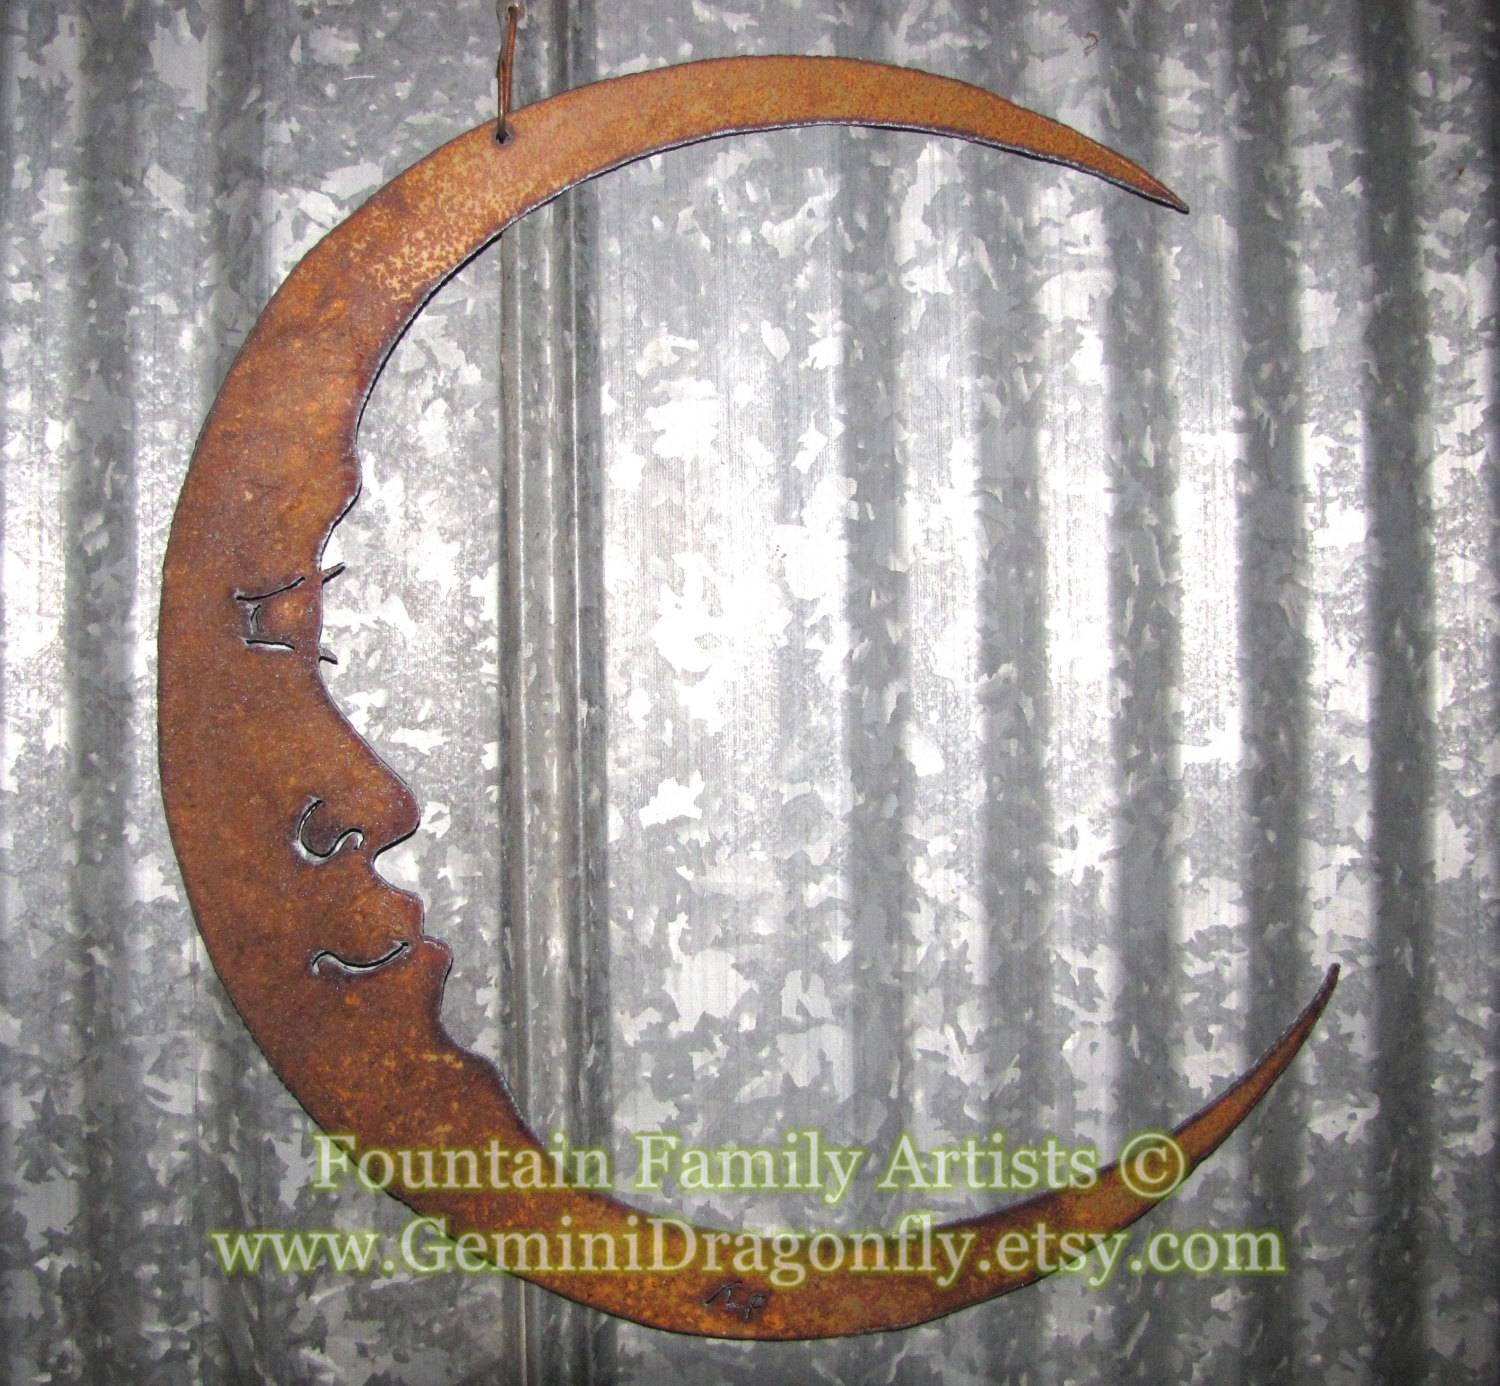 Rusty Crescent Moon / Man In The Moon Metal Garden Art / Recycled Regarding Most Current Moon Outdoor Metal Wall Art (Gallery 11 of 20)